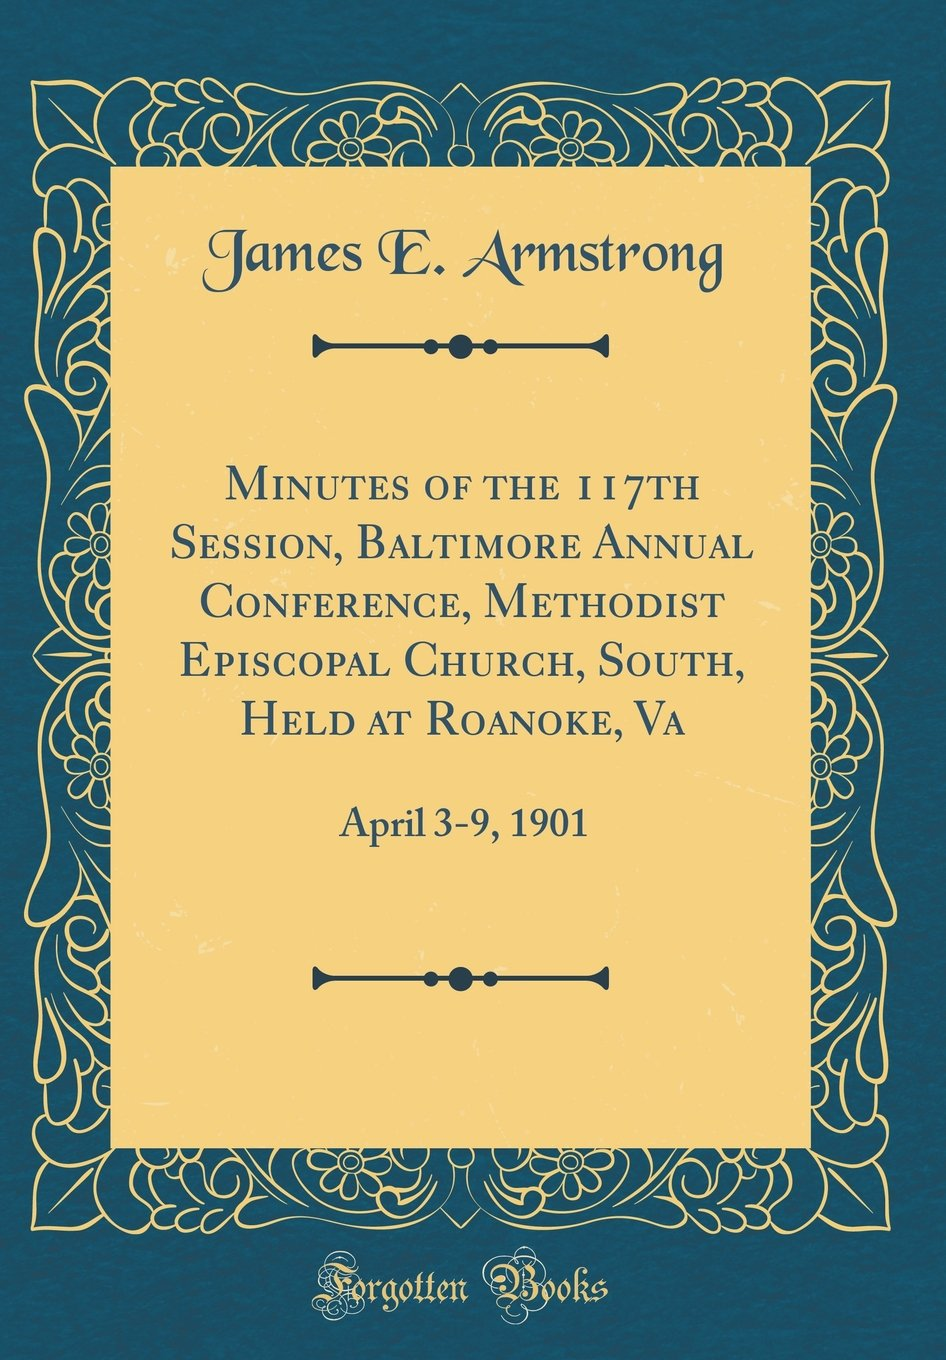 Minutes of the 117th Session, Baltimore Annual Conference, Methodist Episcopal Church, South, Held at Roanoke, Va: April 3-9, 1901 (Classic Reprint) PDF